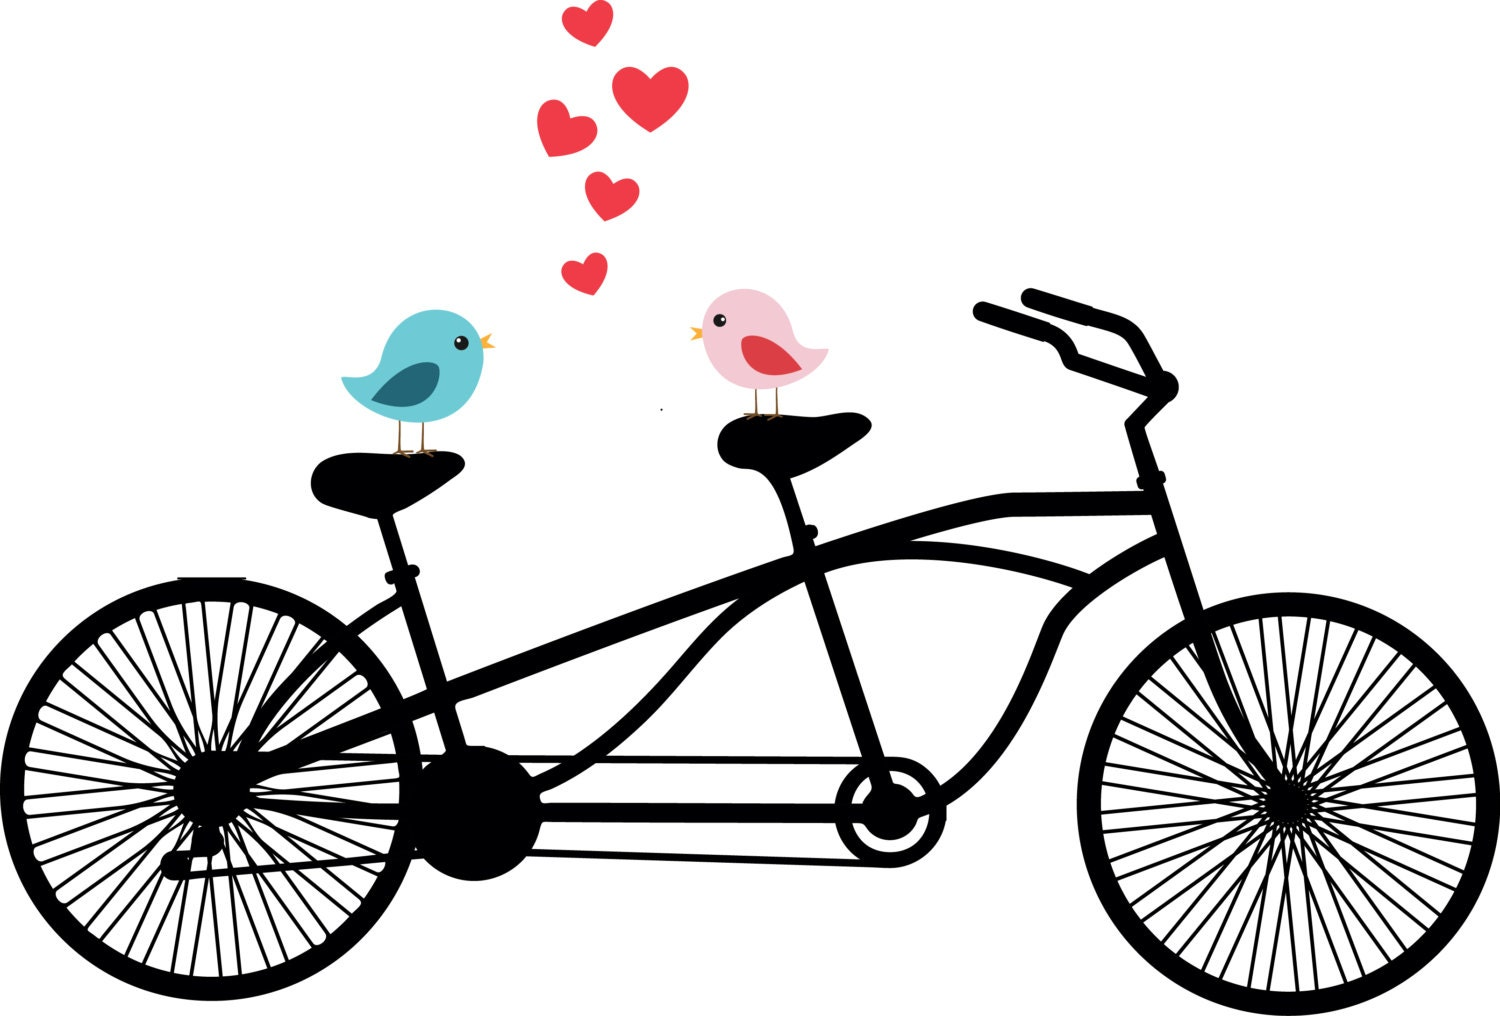 tandem bike clip art wedding real clipart and vector graphics u2022 rh realclipart today tandem bicycle clipart free